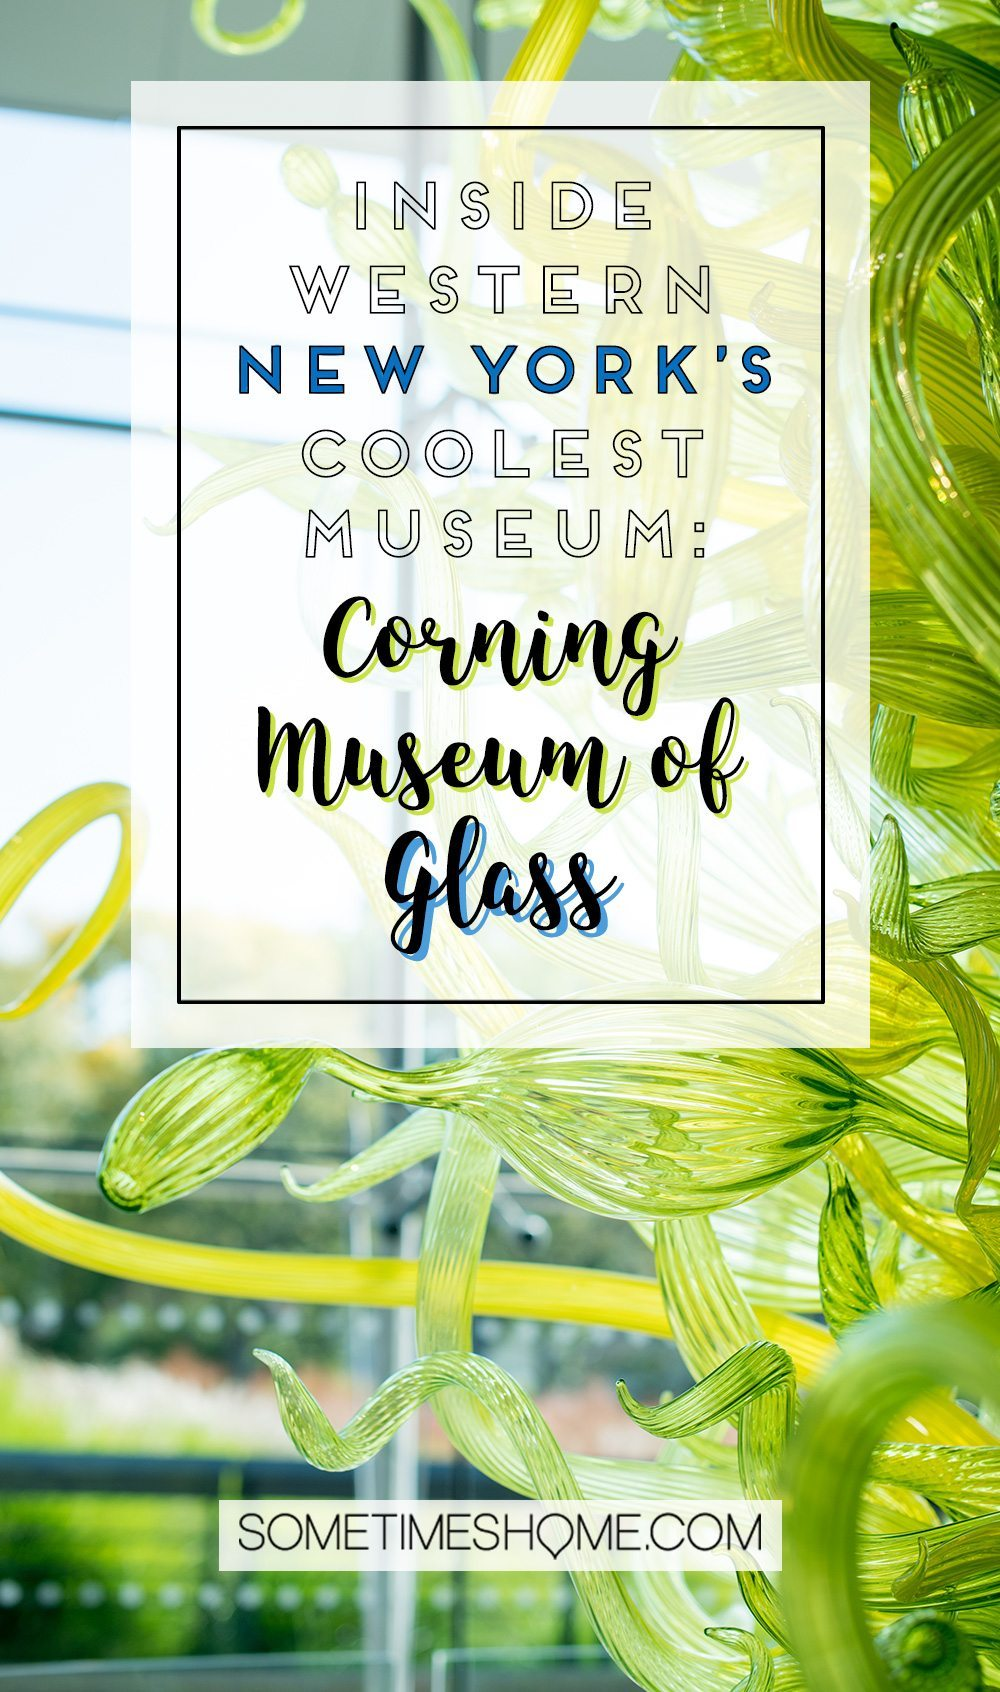 Corning Museum of Glass gift shop, hours, exhibits, photos and more on Sometimes Home travel blog. Also links to an article of what to do in Corning, New York in the Finger Lakes region.